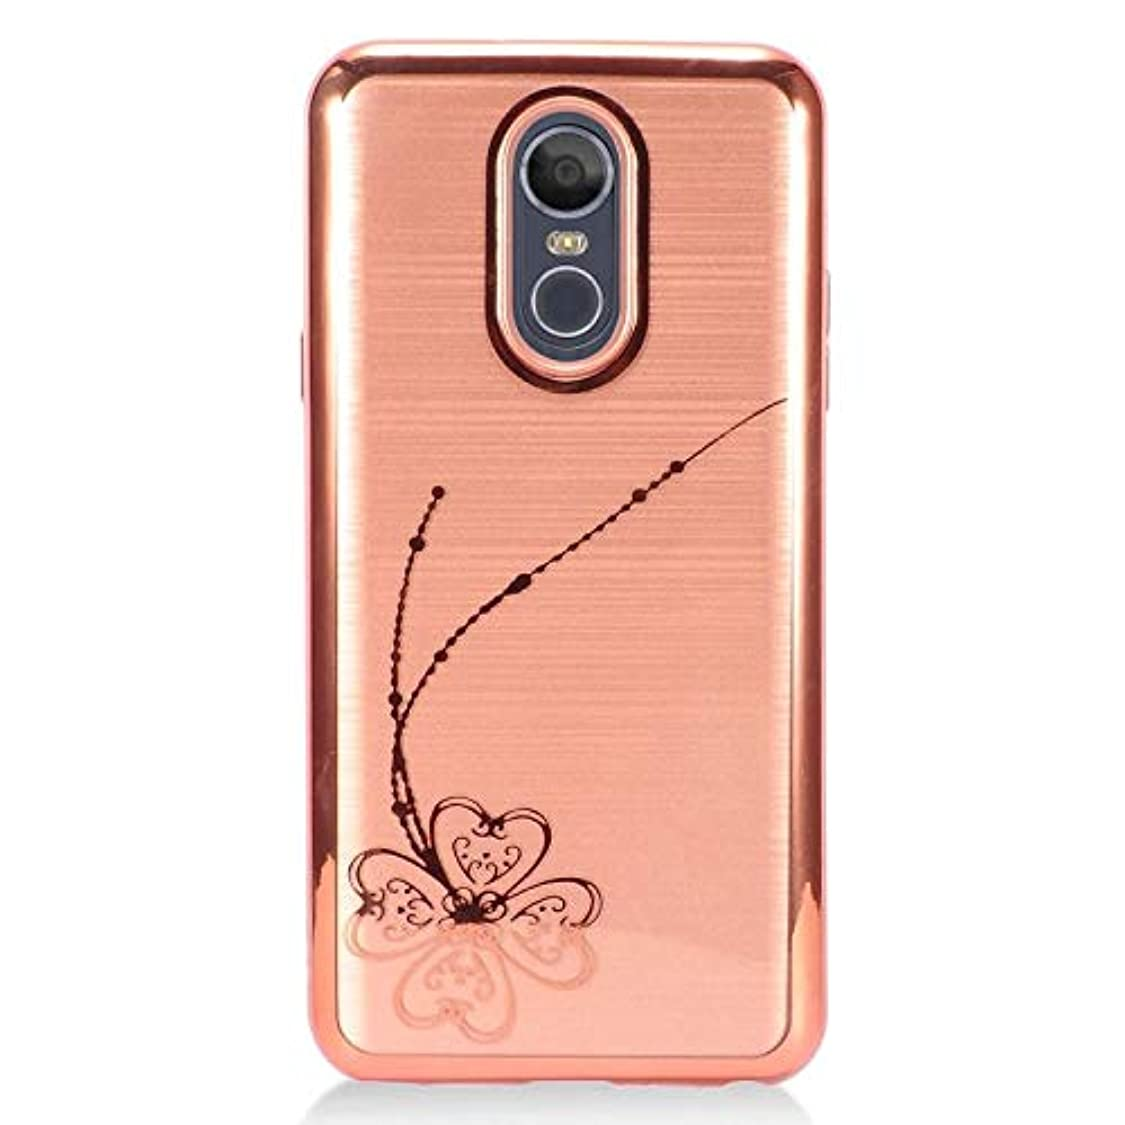 Insten Four-Leaf Clover Dual Layer [Shock Absorbing] Protection Hybrid PC/TPU Rubber Case Cover Compatible with LG Stylo 4, Rose Gold ka93969650599876